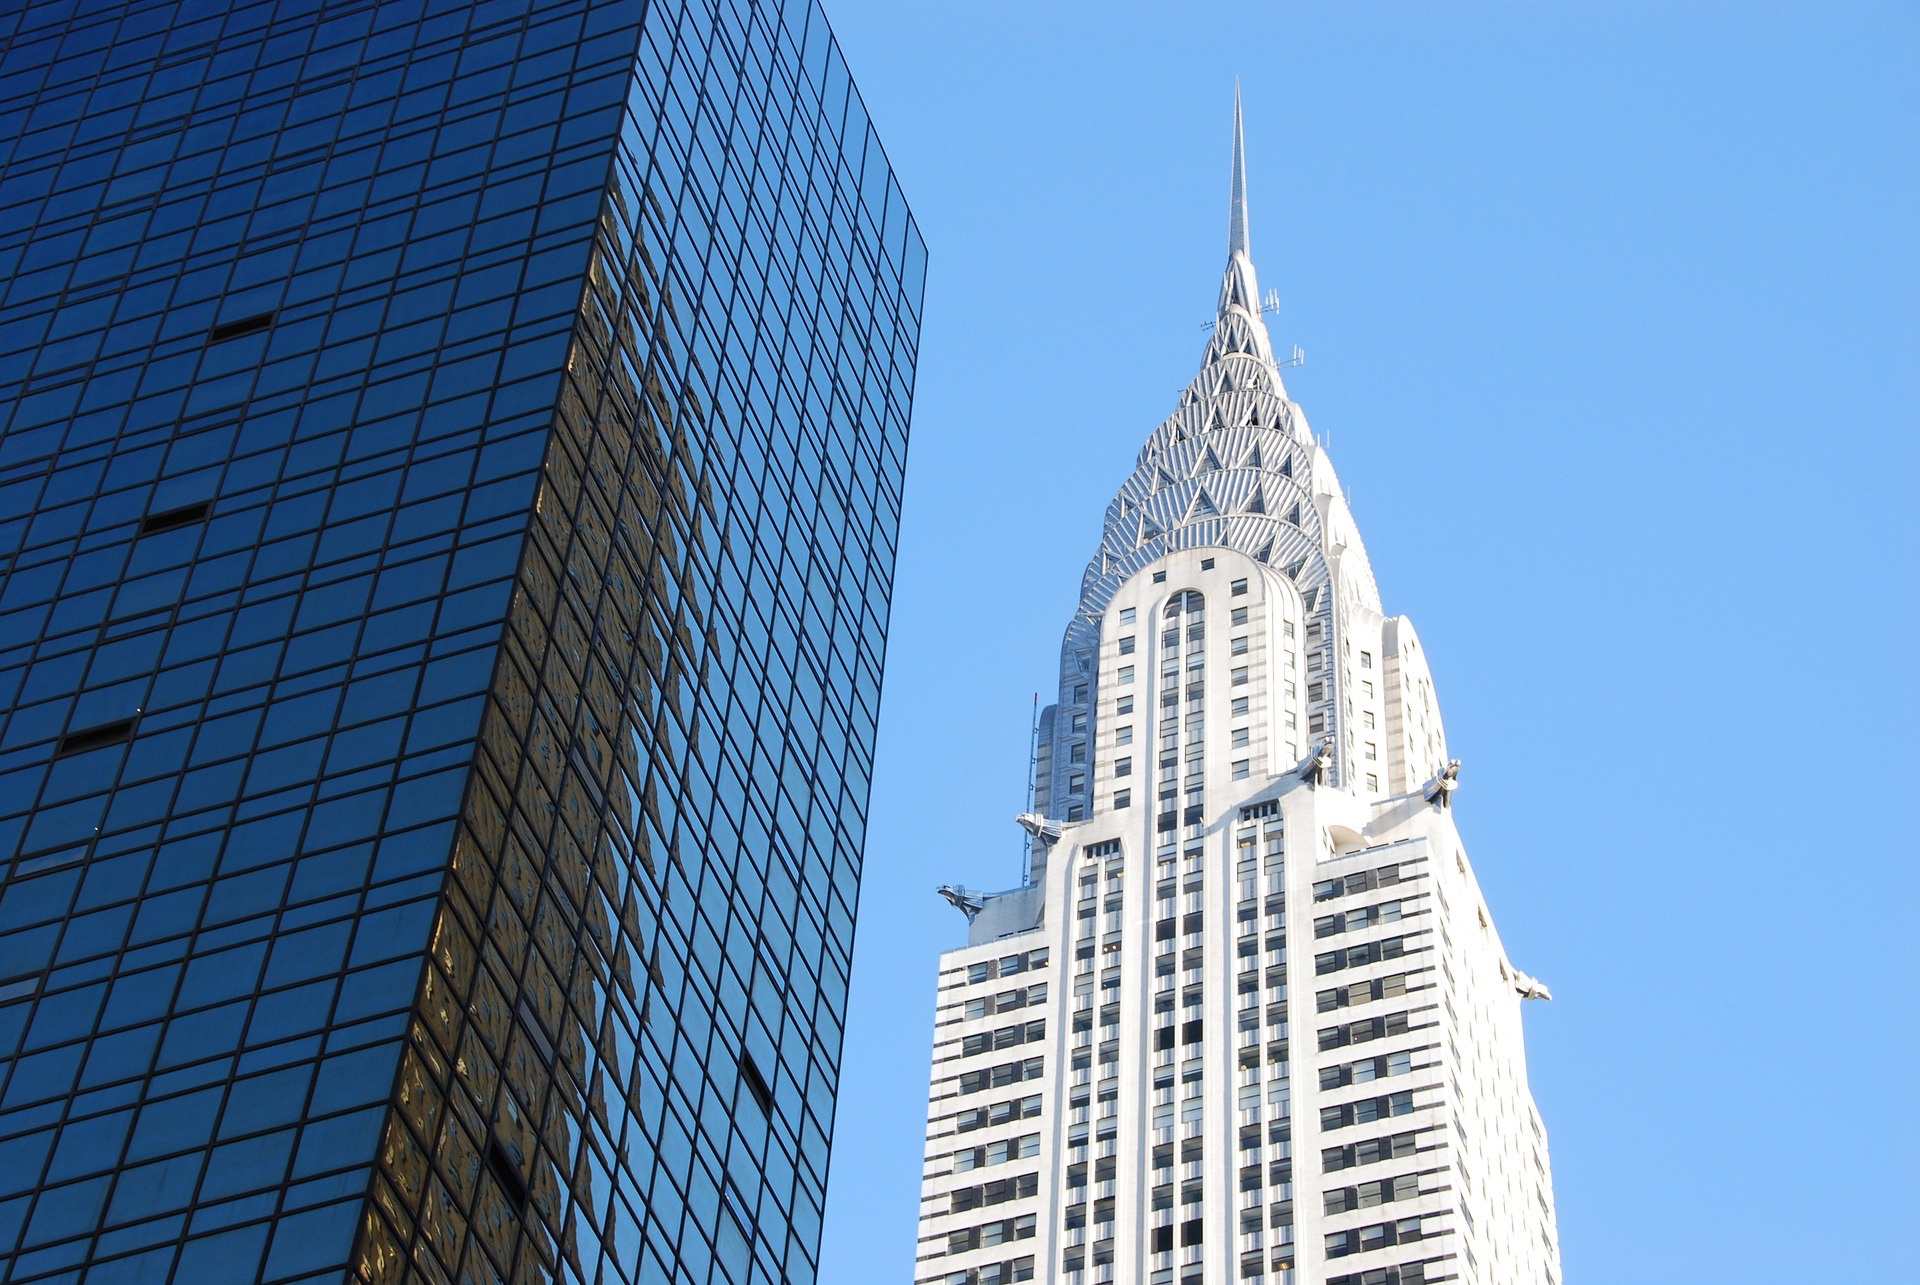 Chrysler Building Update: The Chrysler Building Is For Sale